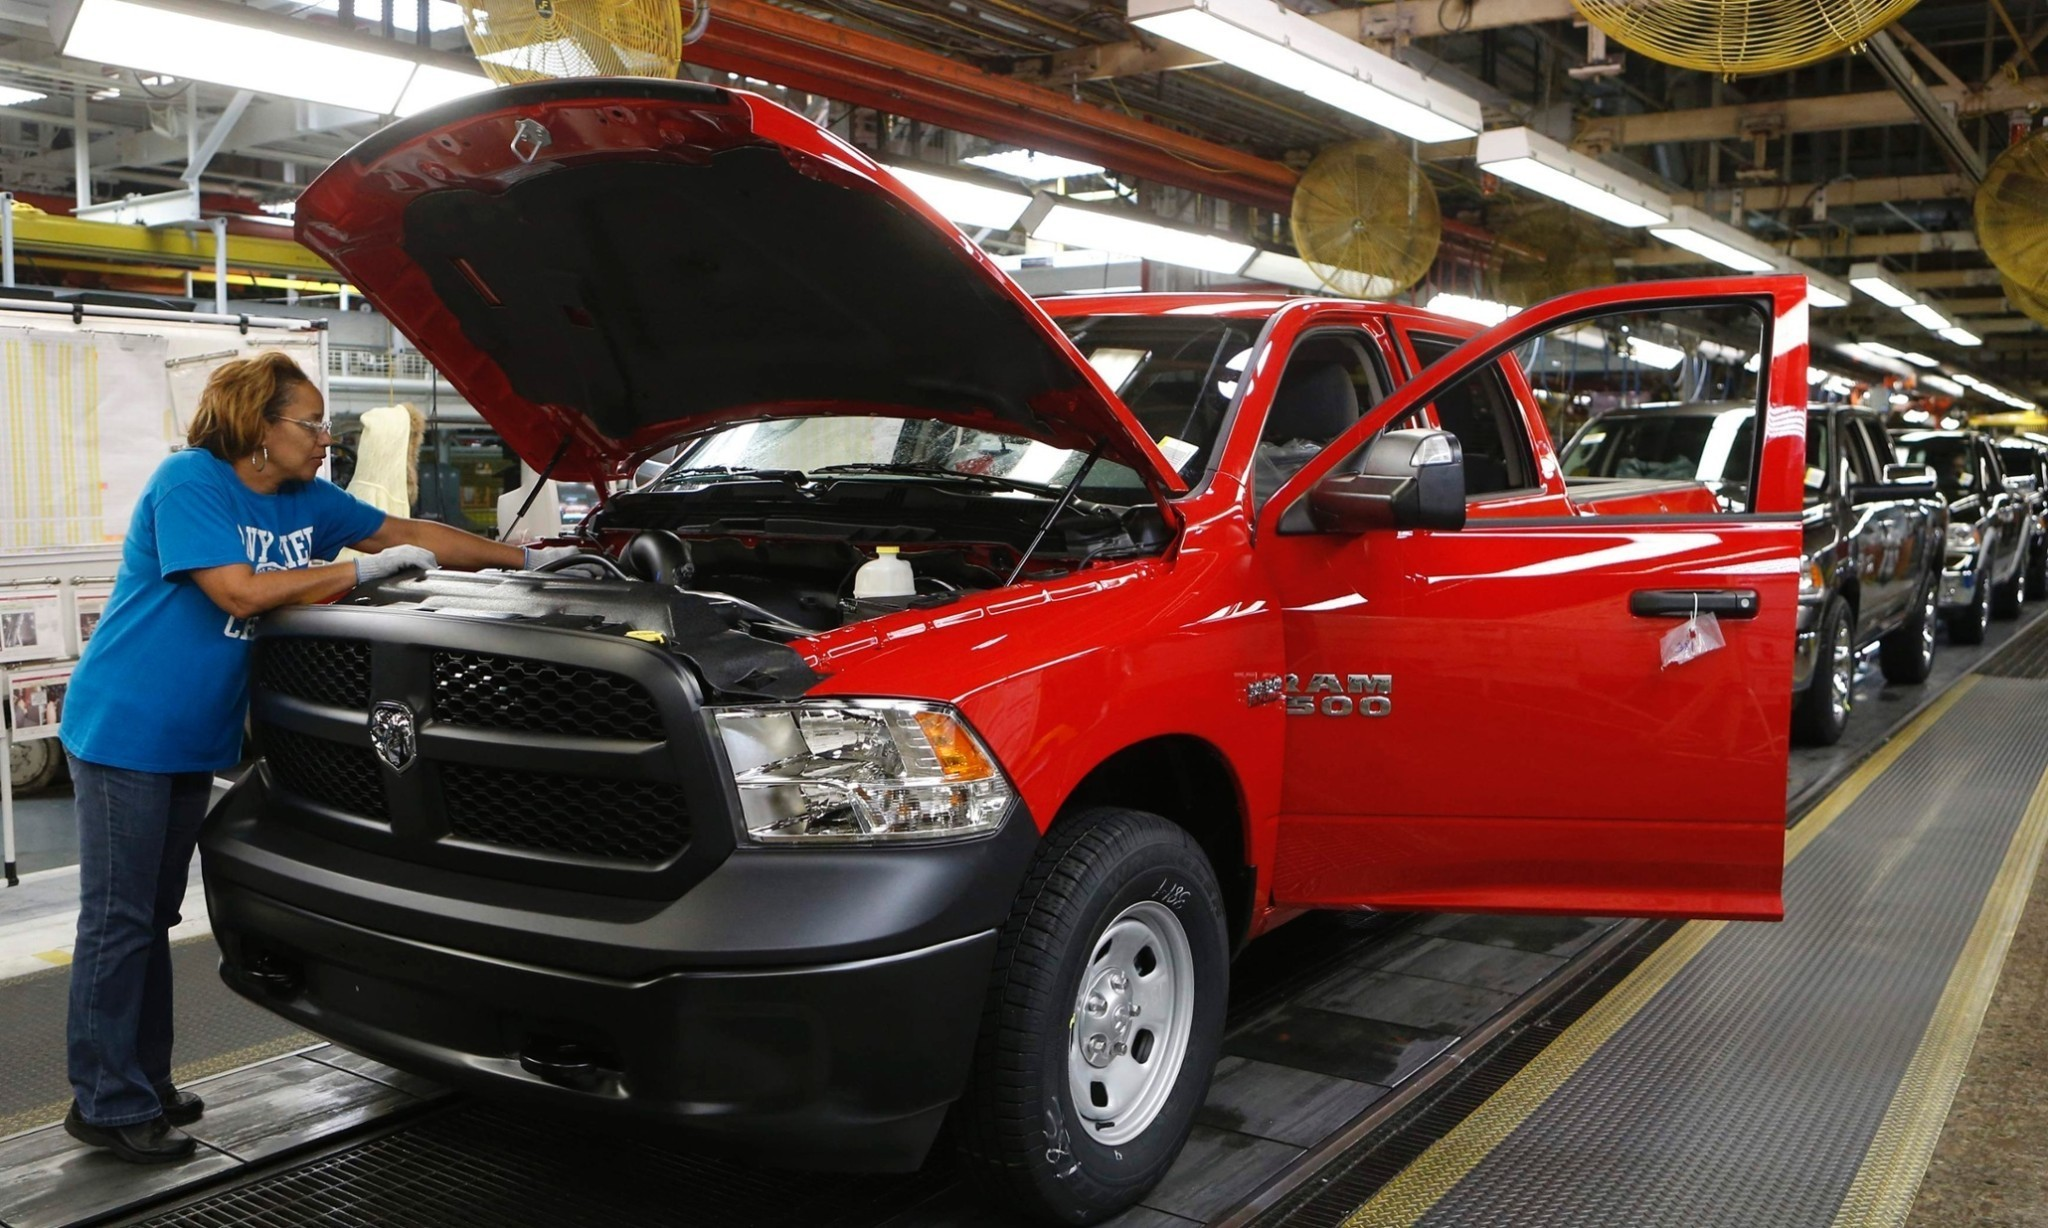 Federal inquiry opens into Dodge pickup trucks for axle safety issue